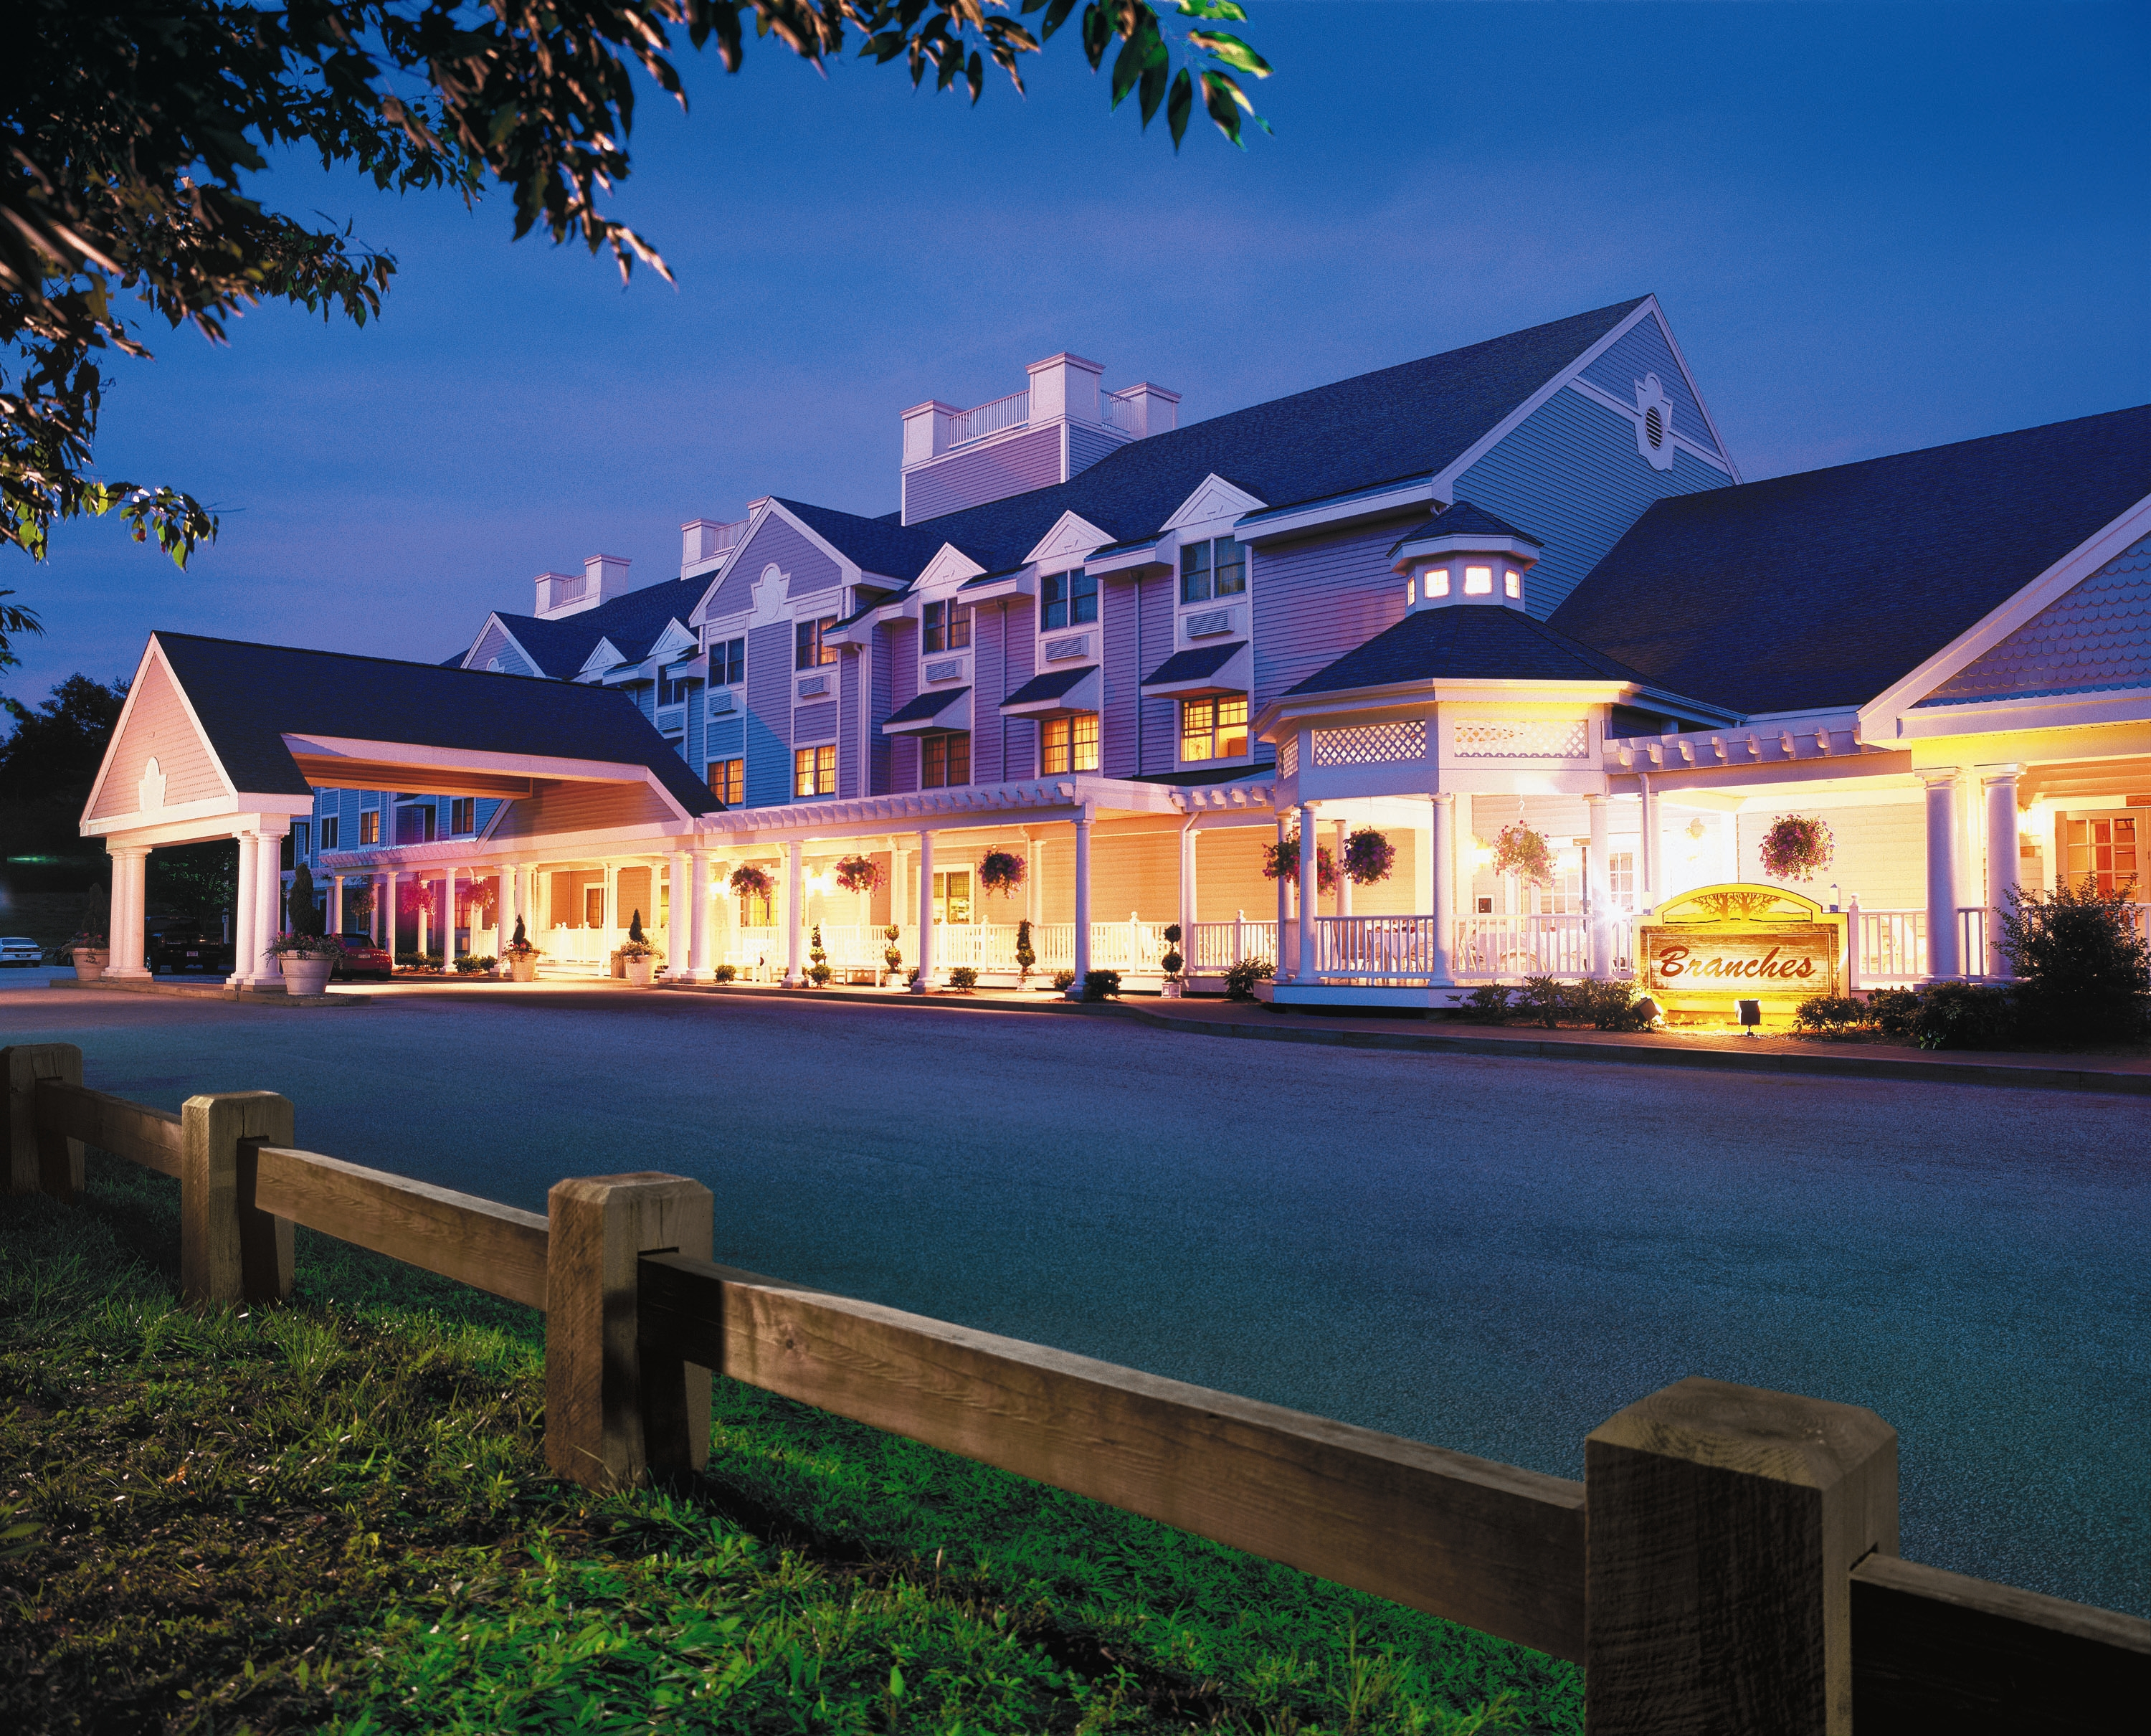 Two Trees Inn at Foxwoods Resort Casino